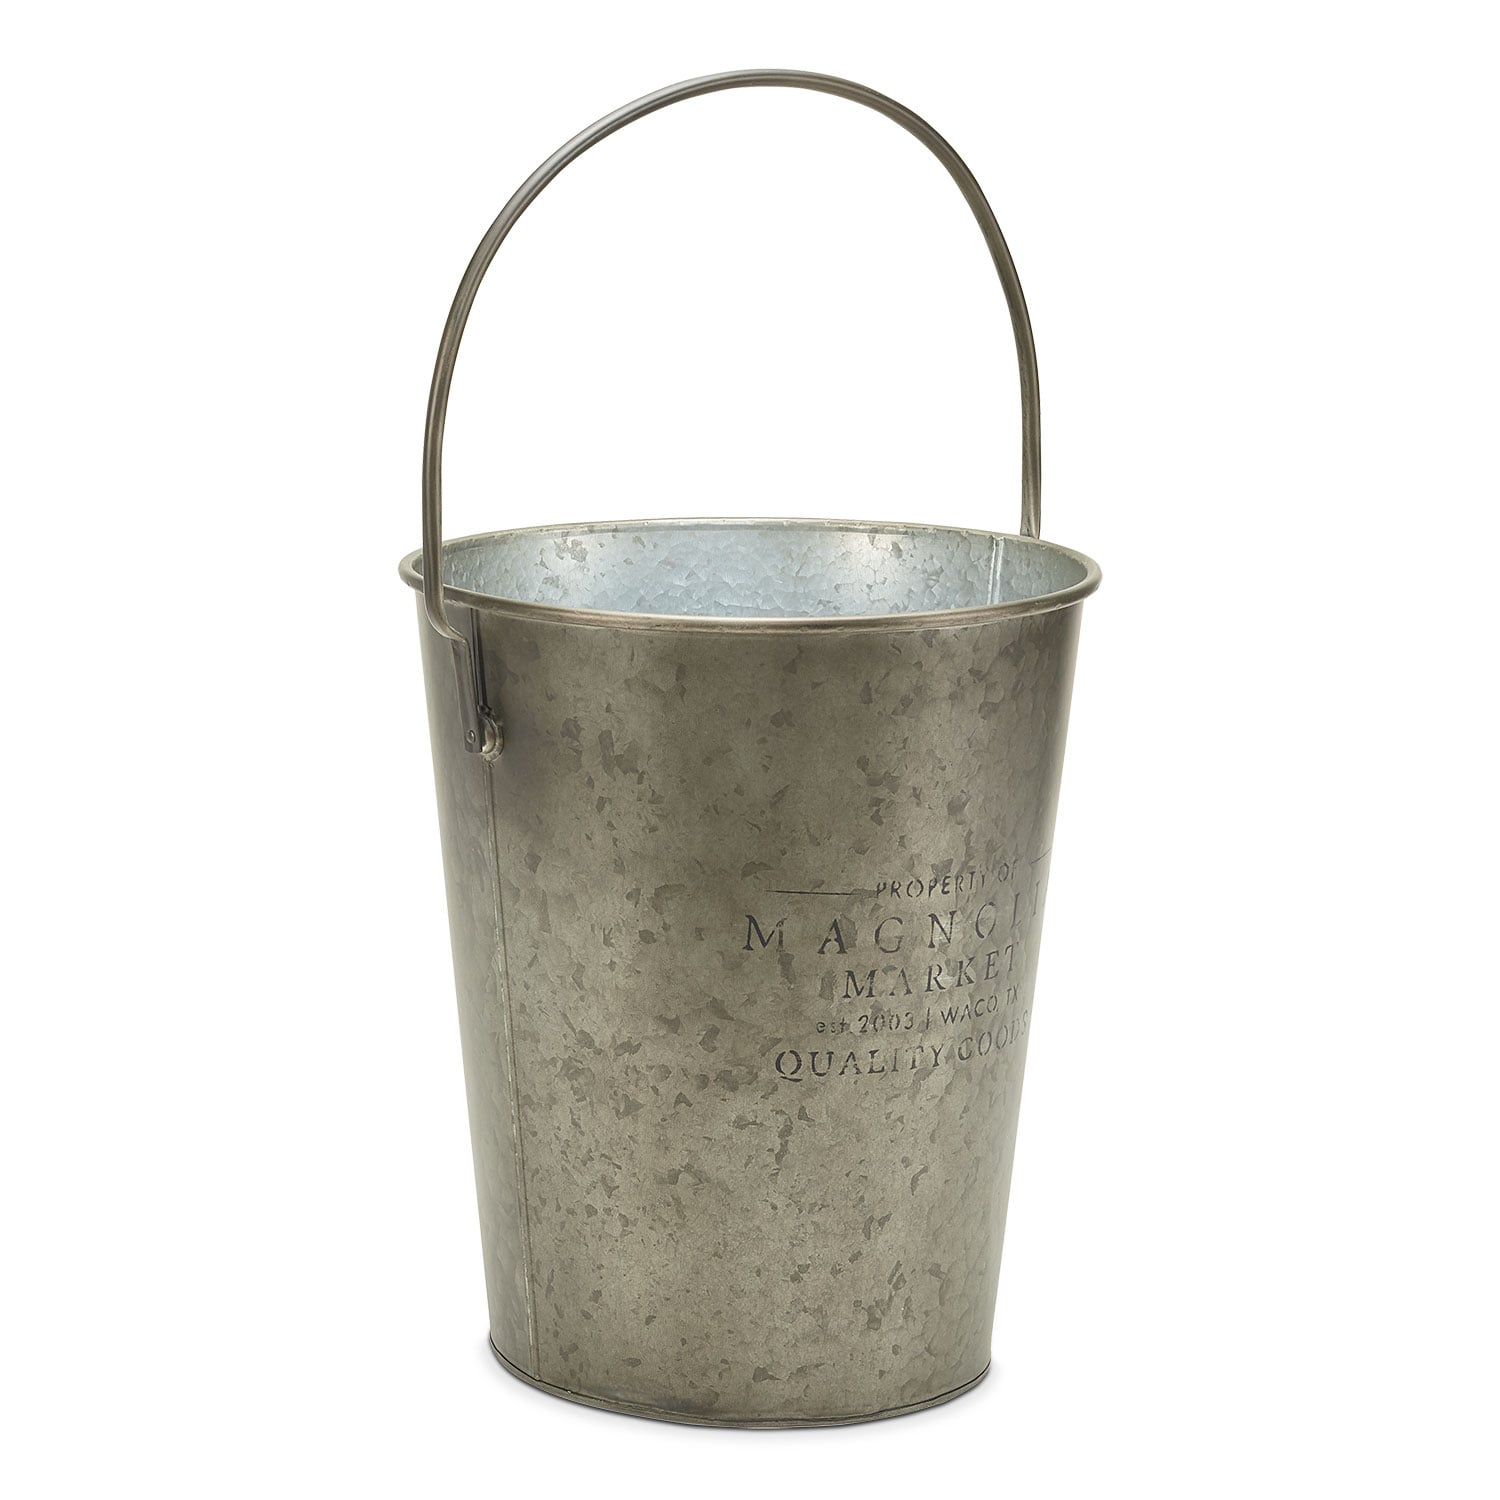 Metal Milk Bucket with Magnolia Logo